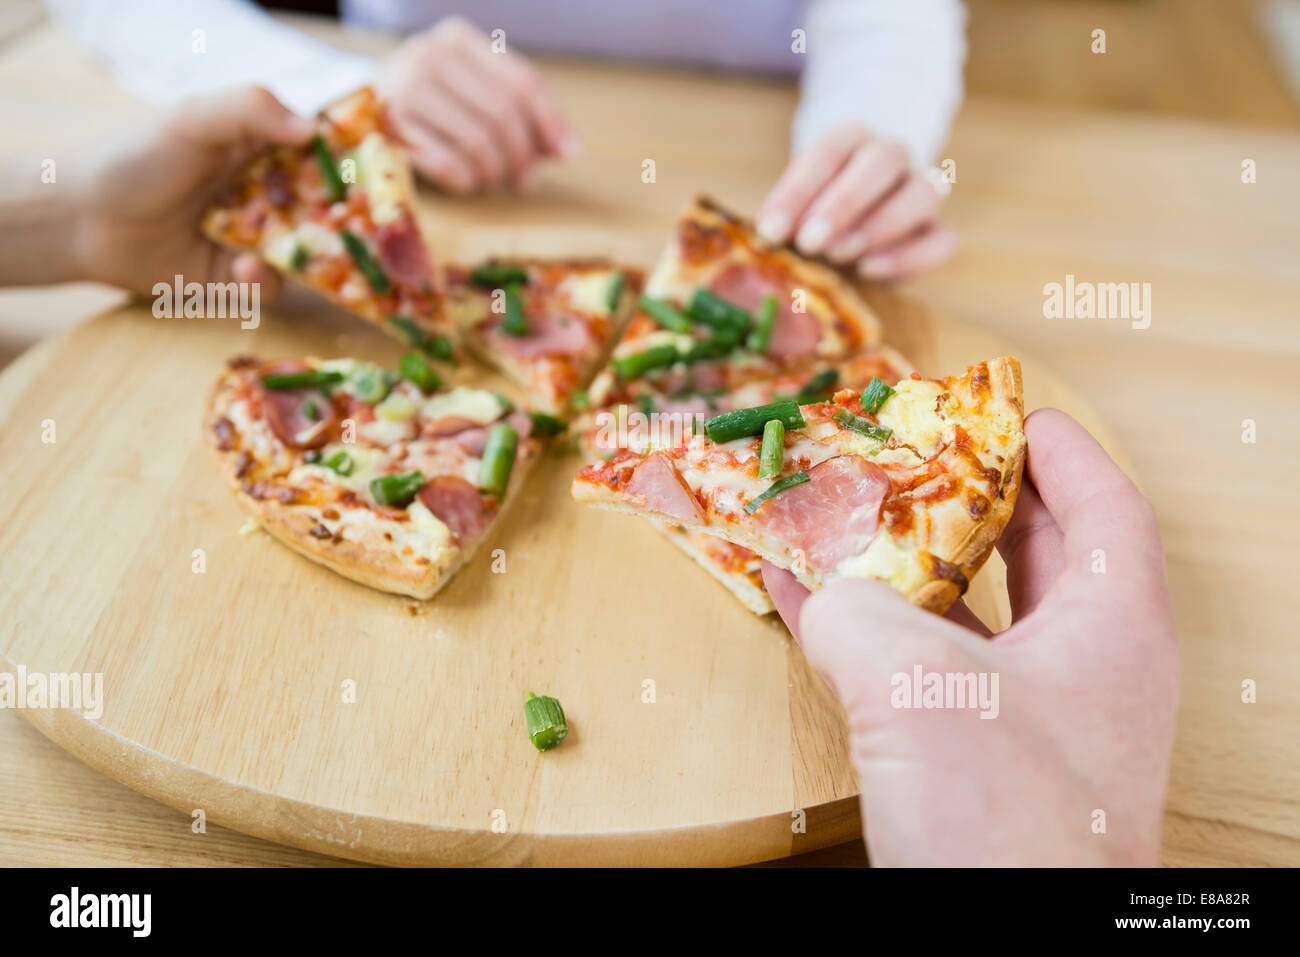 Family sharing a pizza - Stock Image